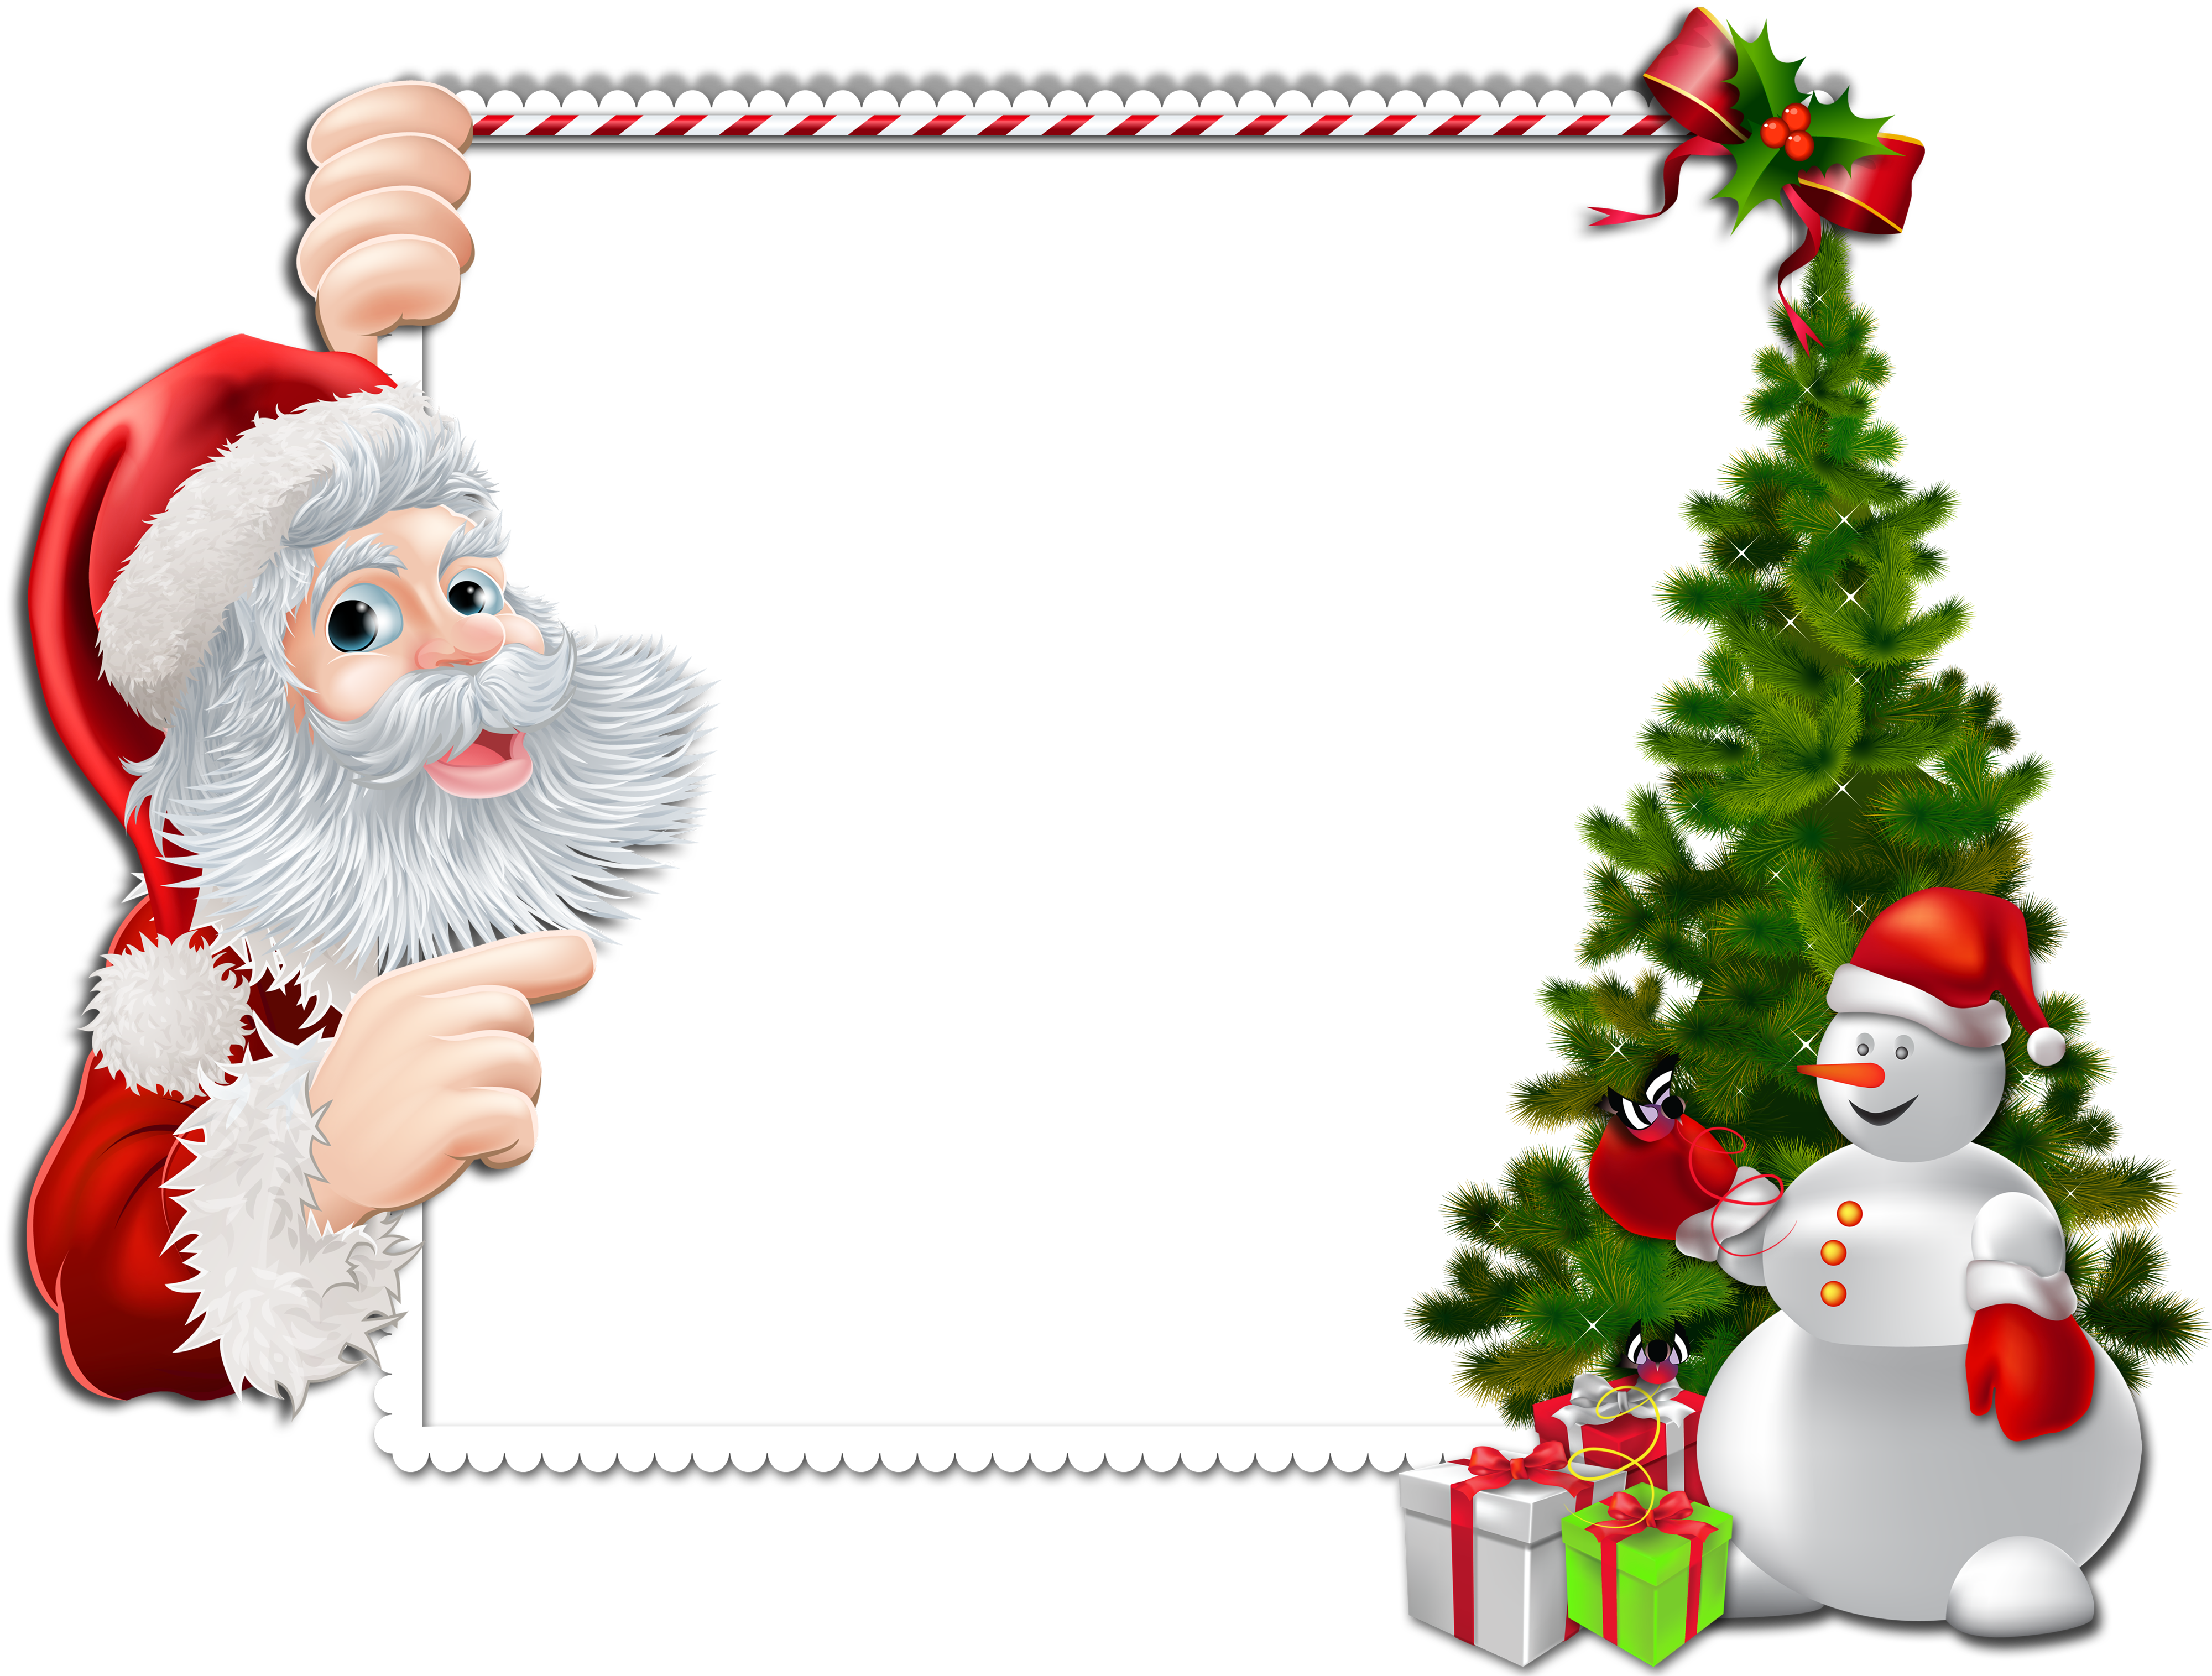 Large Christmas Frame With Santa And Snowman